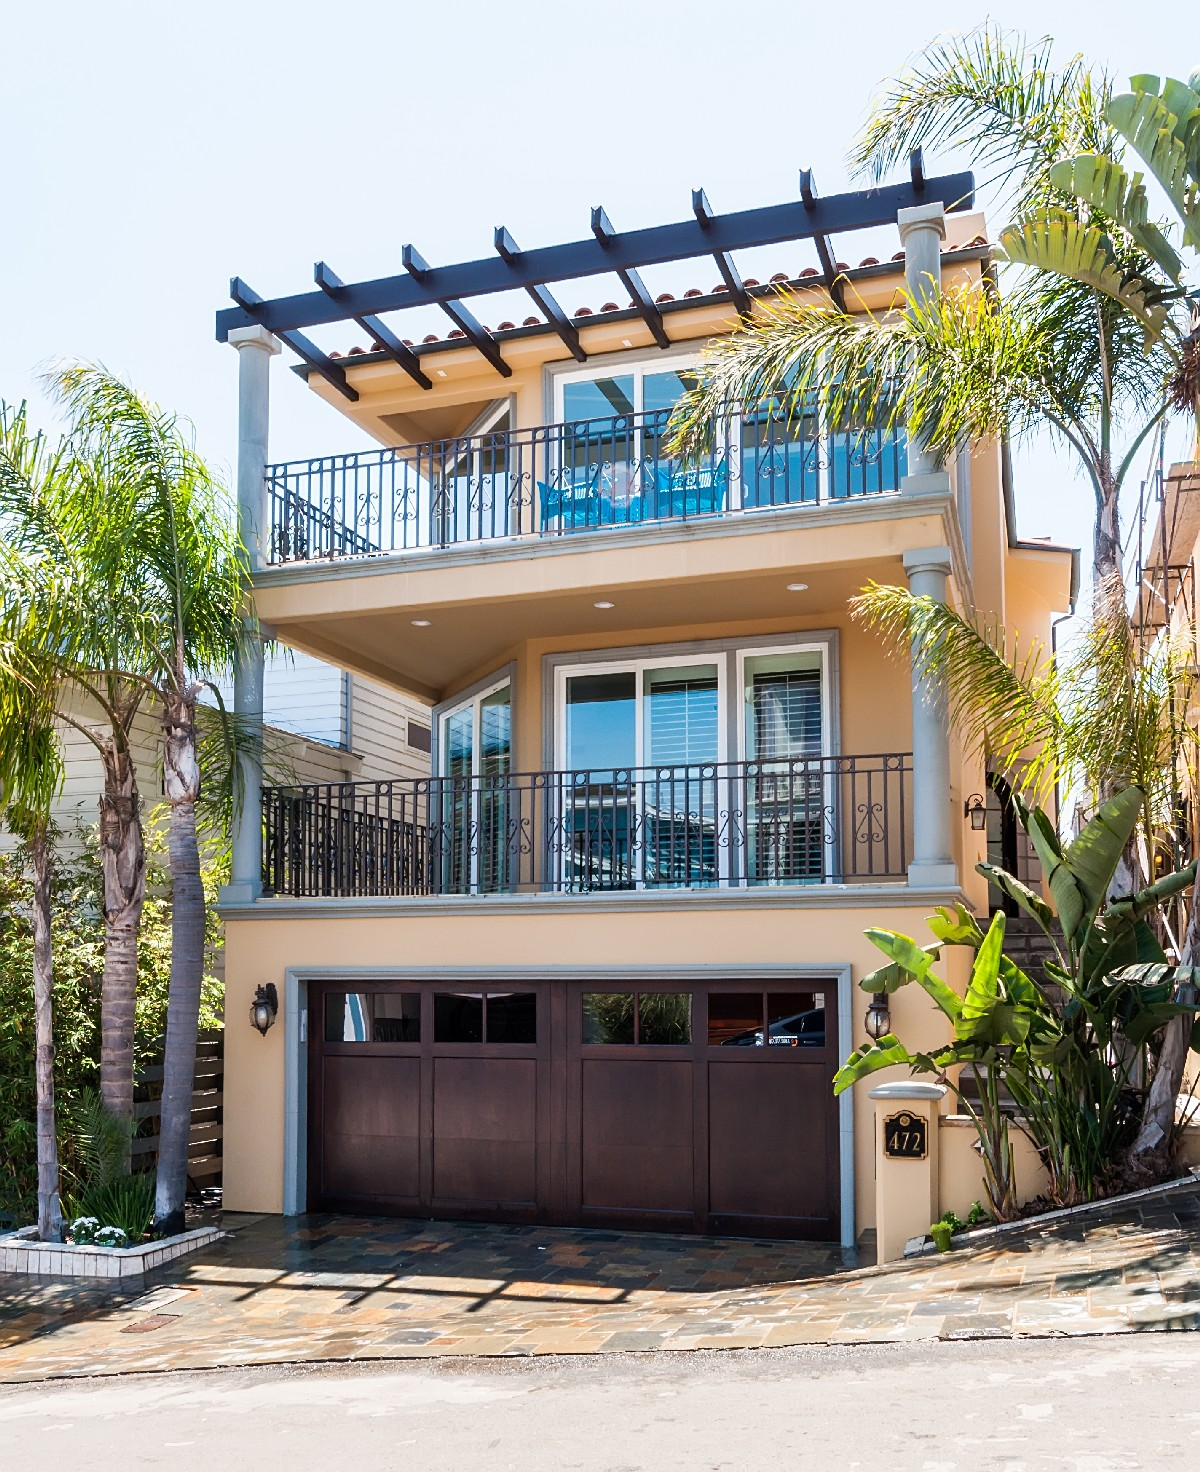 Single Family Home for Sale at 472 29th St, Manhattan Beach 90266 472 29th Street Manhattan Beach, California 90266 United States